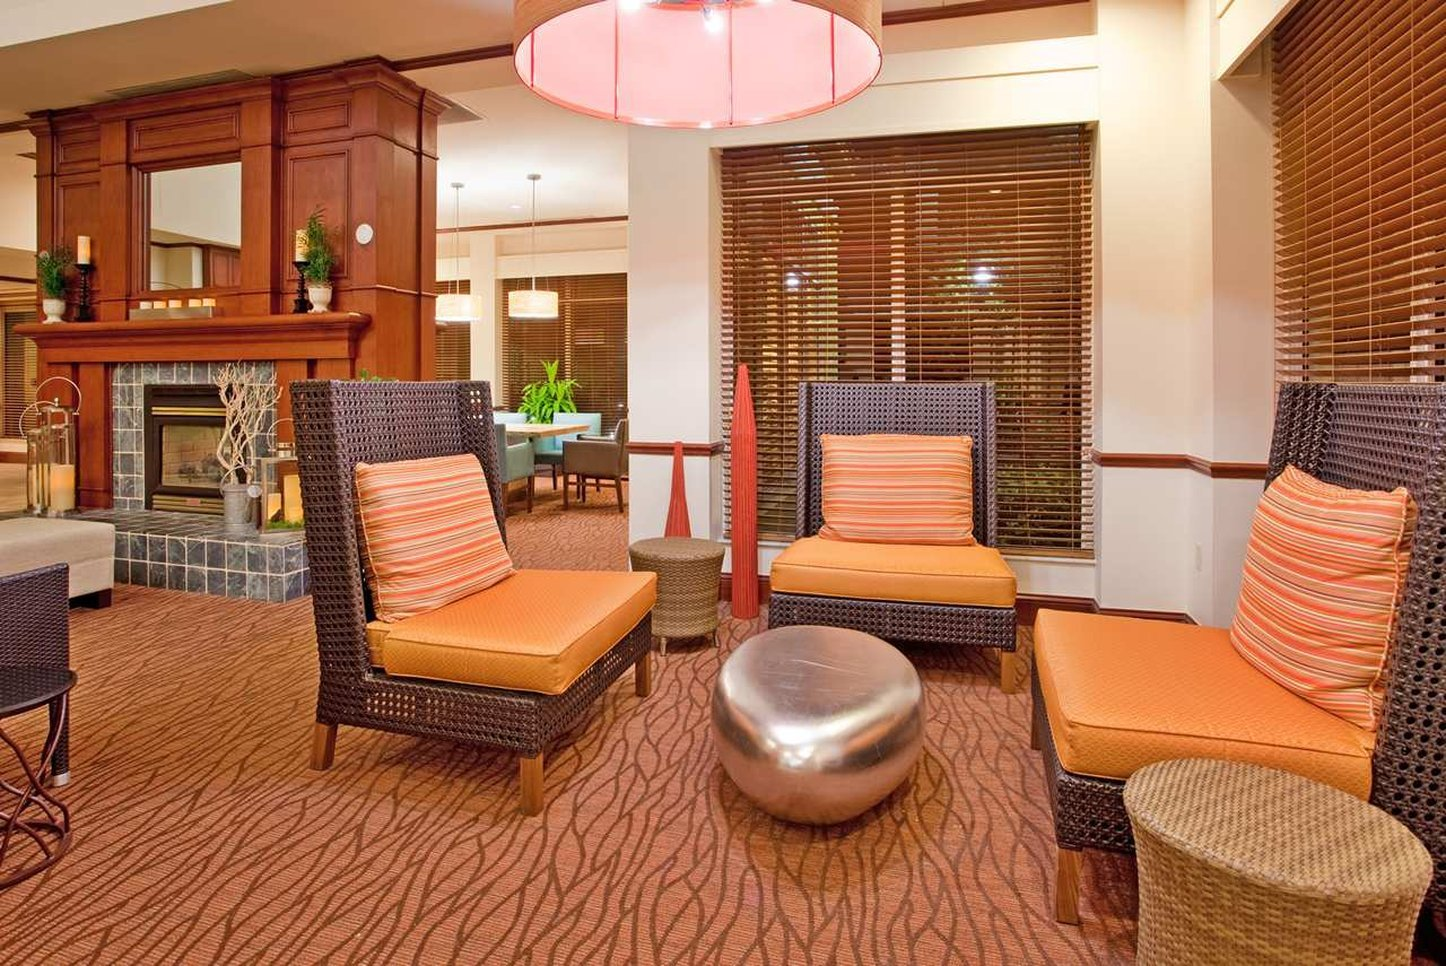 Hilton Garden Inn Boca Raton - Day Use Rooms | Hotels By Day